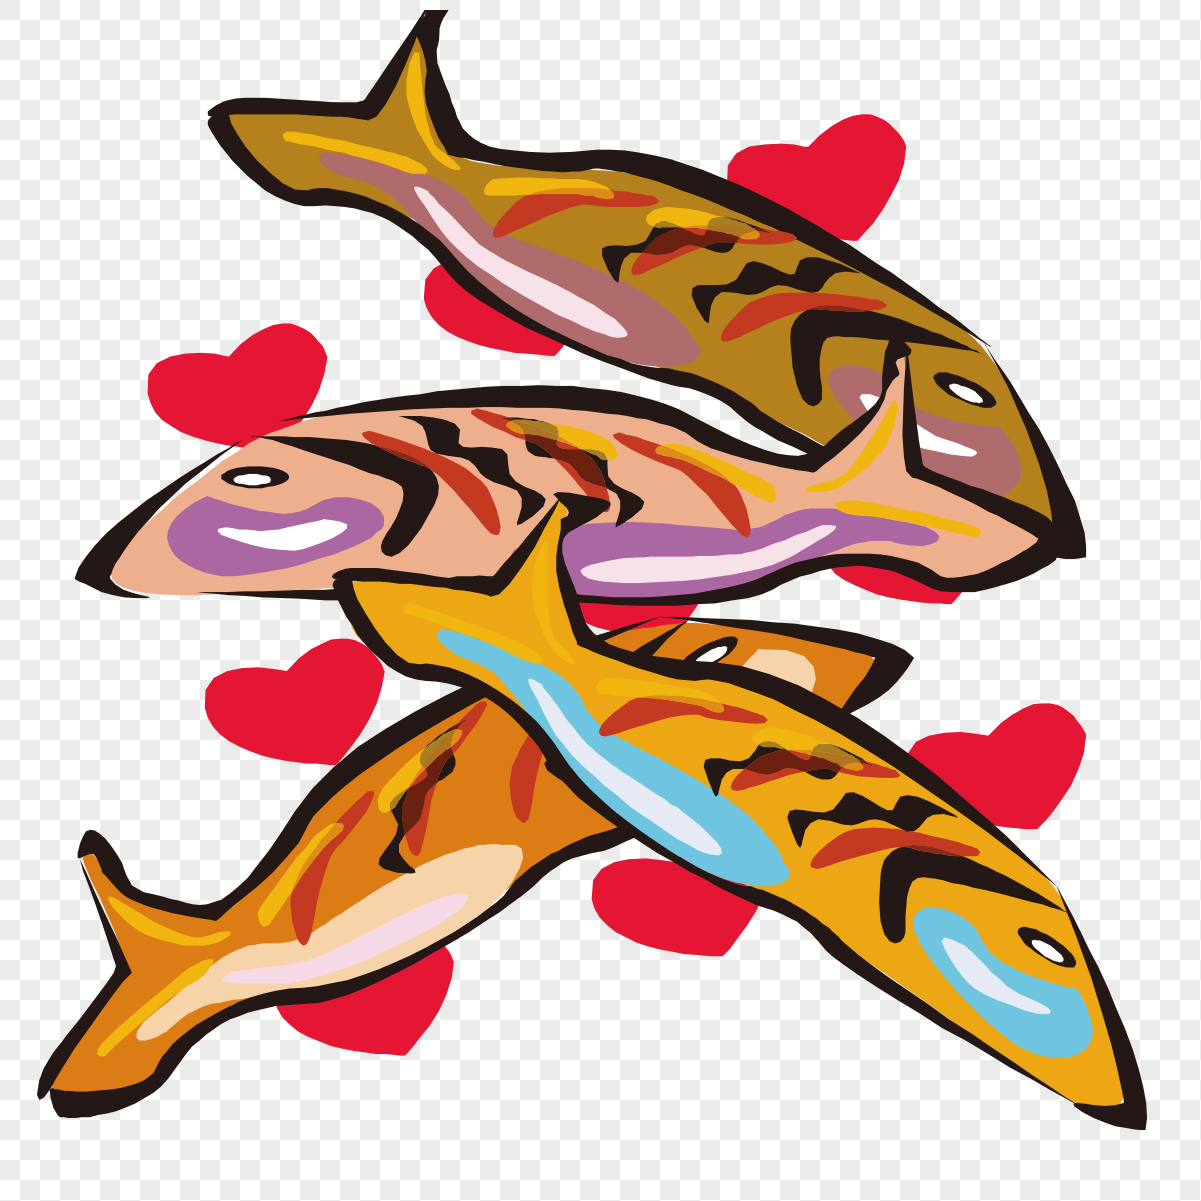 cartoon hand painted fish pattern png image picture free download